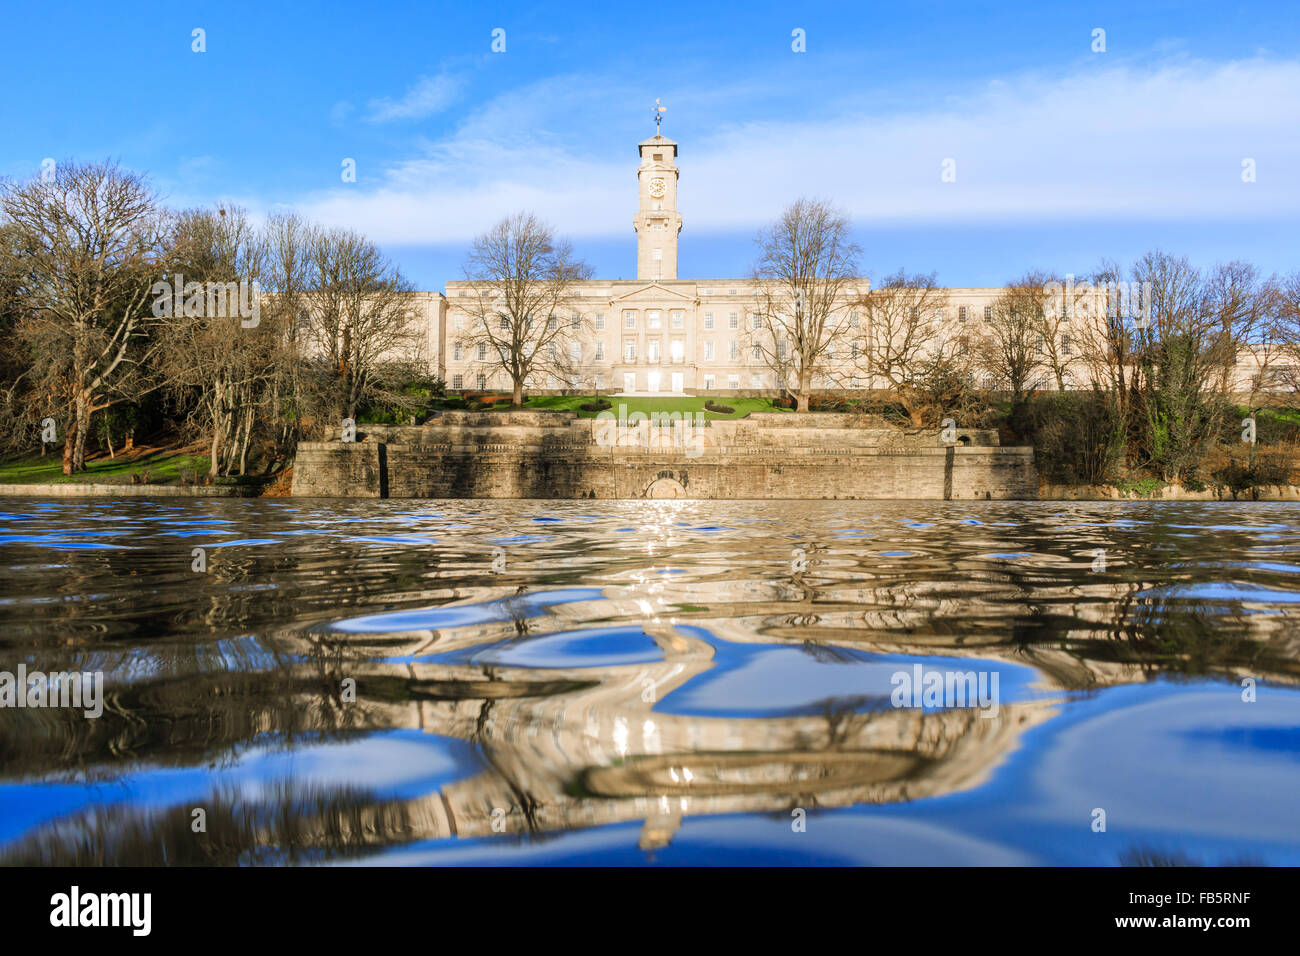 University of Nottingham - Stock Image